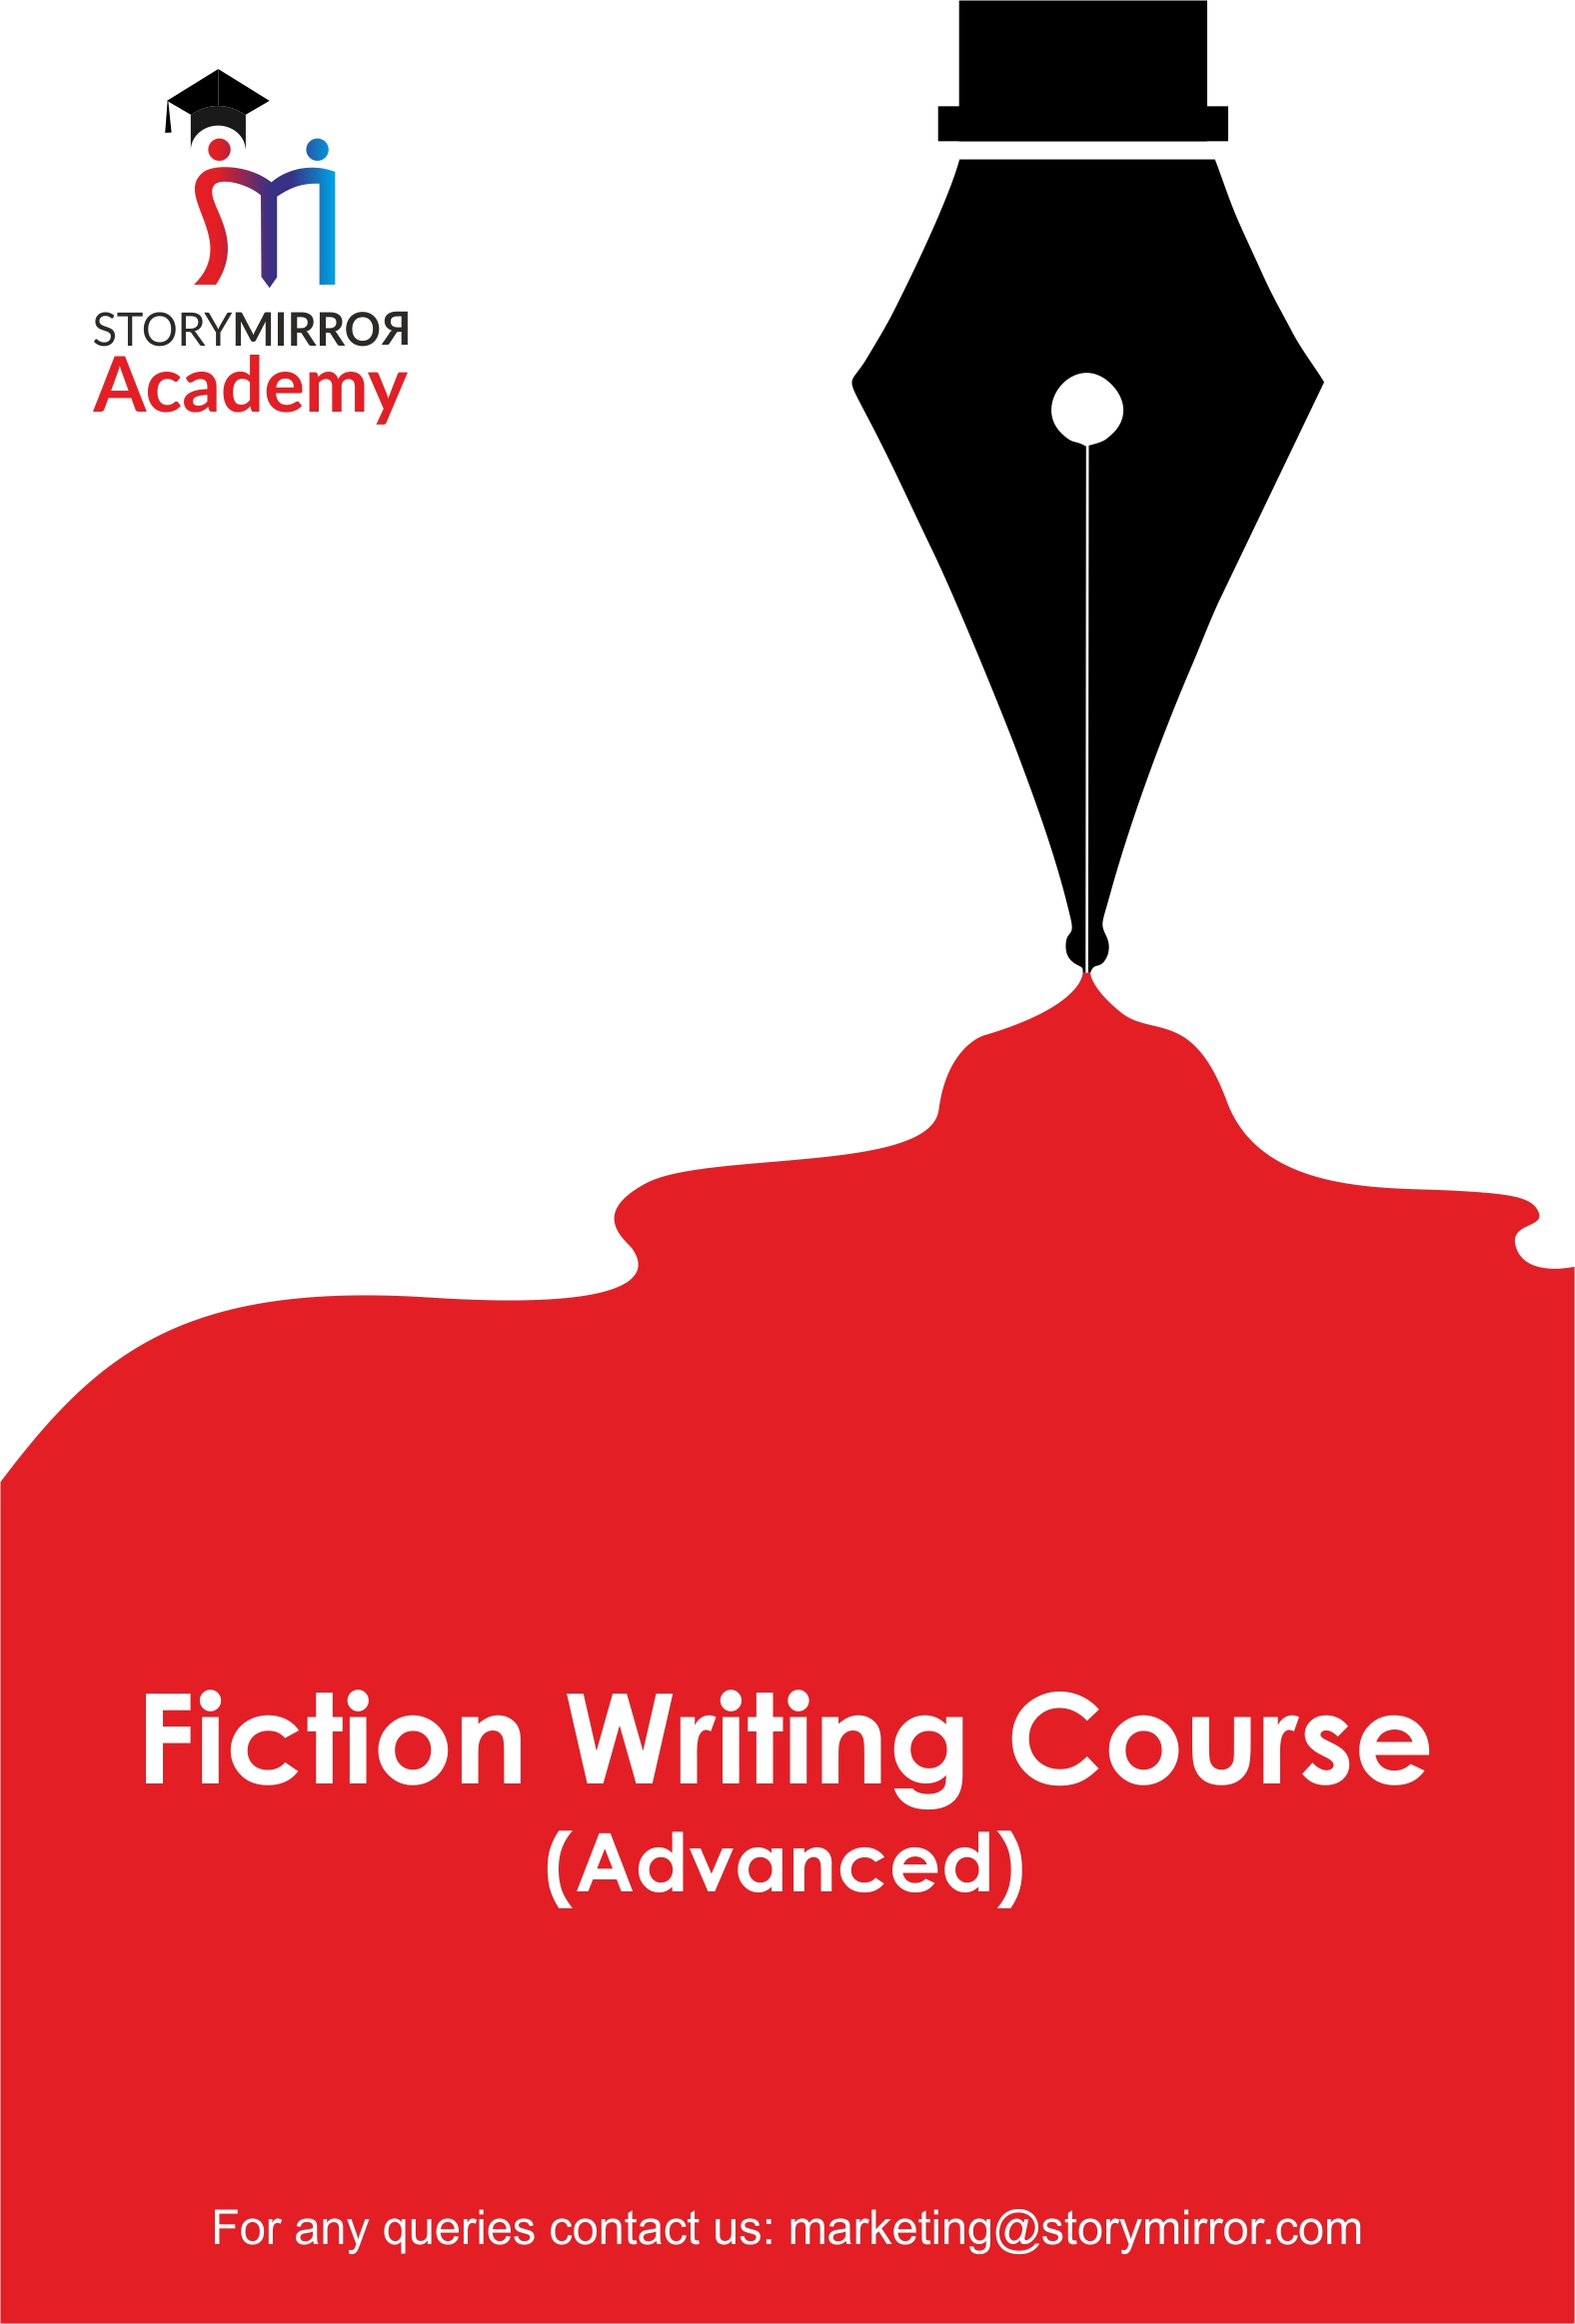 Fiction Writing Course - Advanced